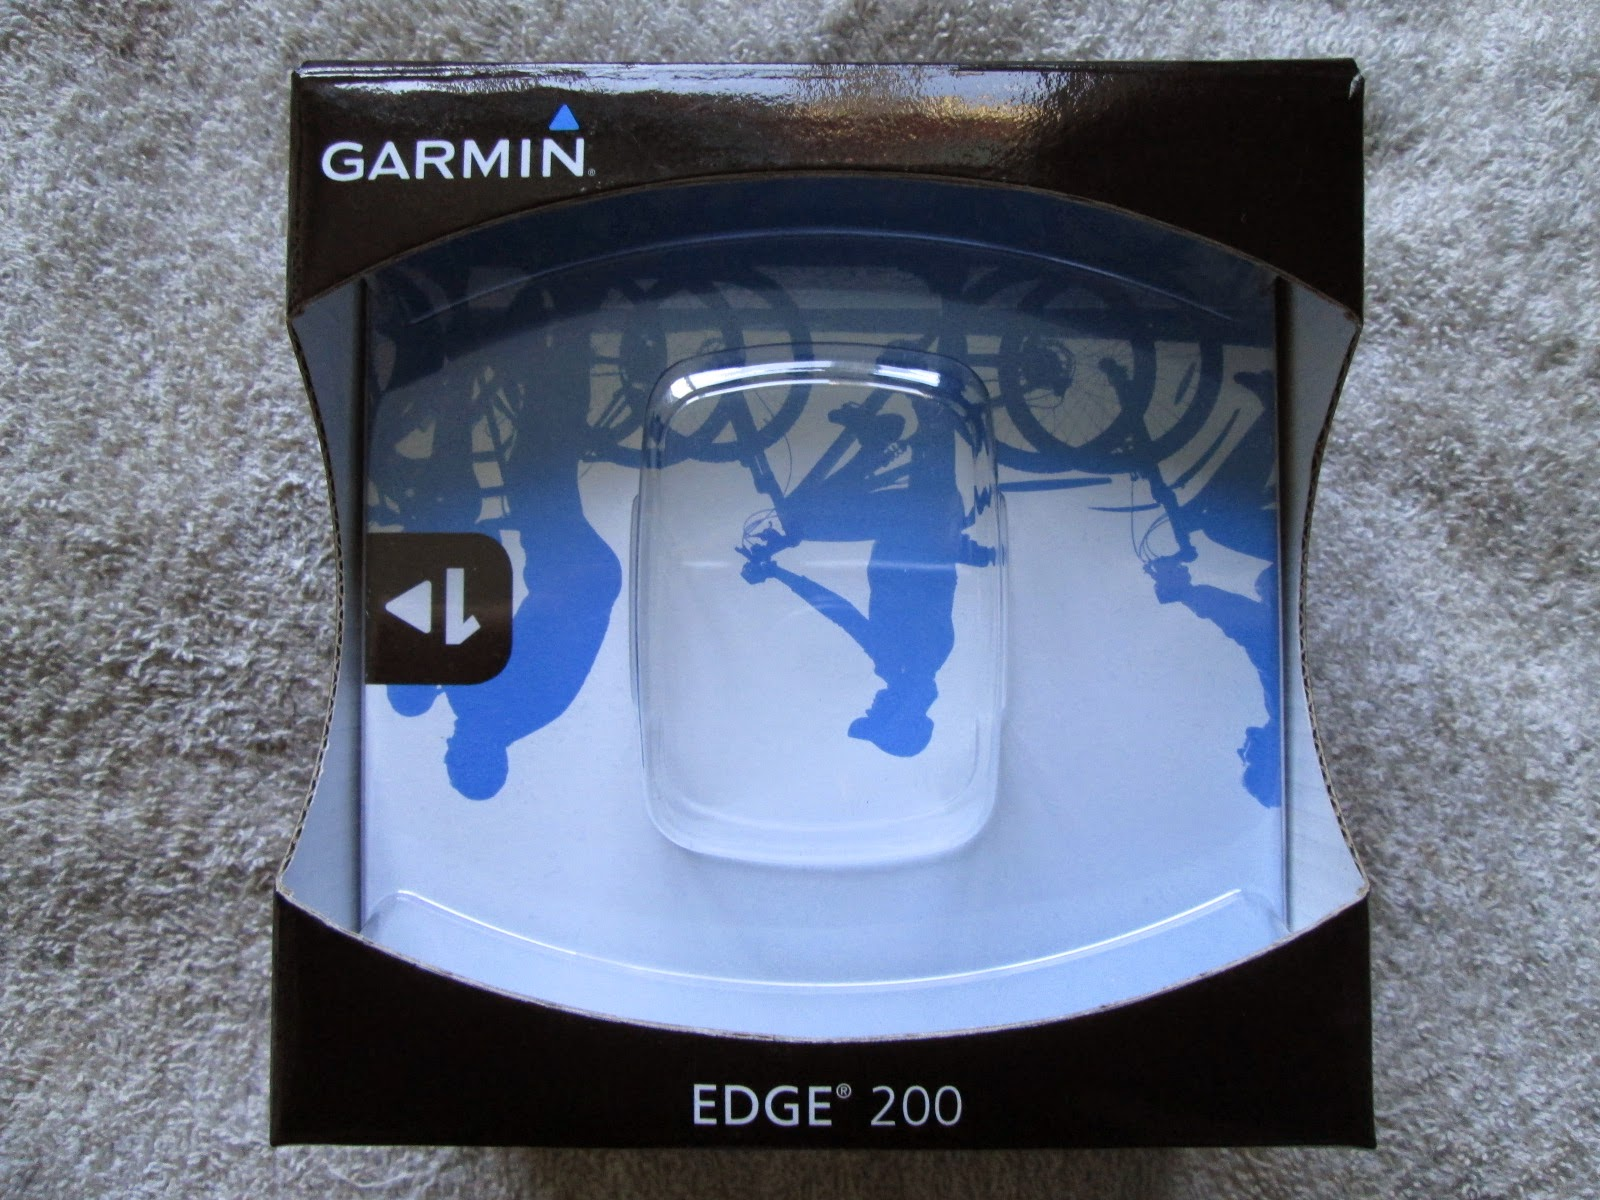 Muddy Brown's Blog: Fresh Goods Sunday - Garmin Edge 200